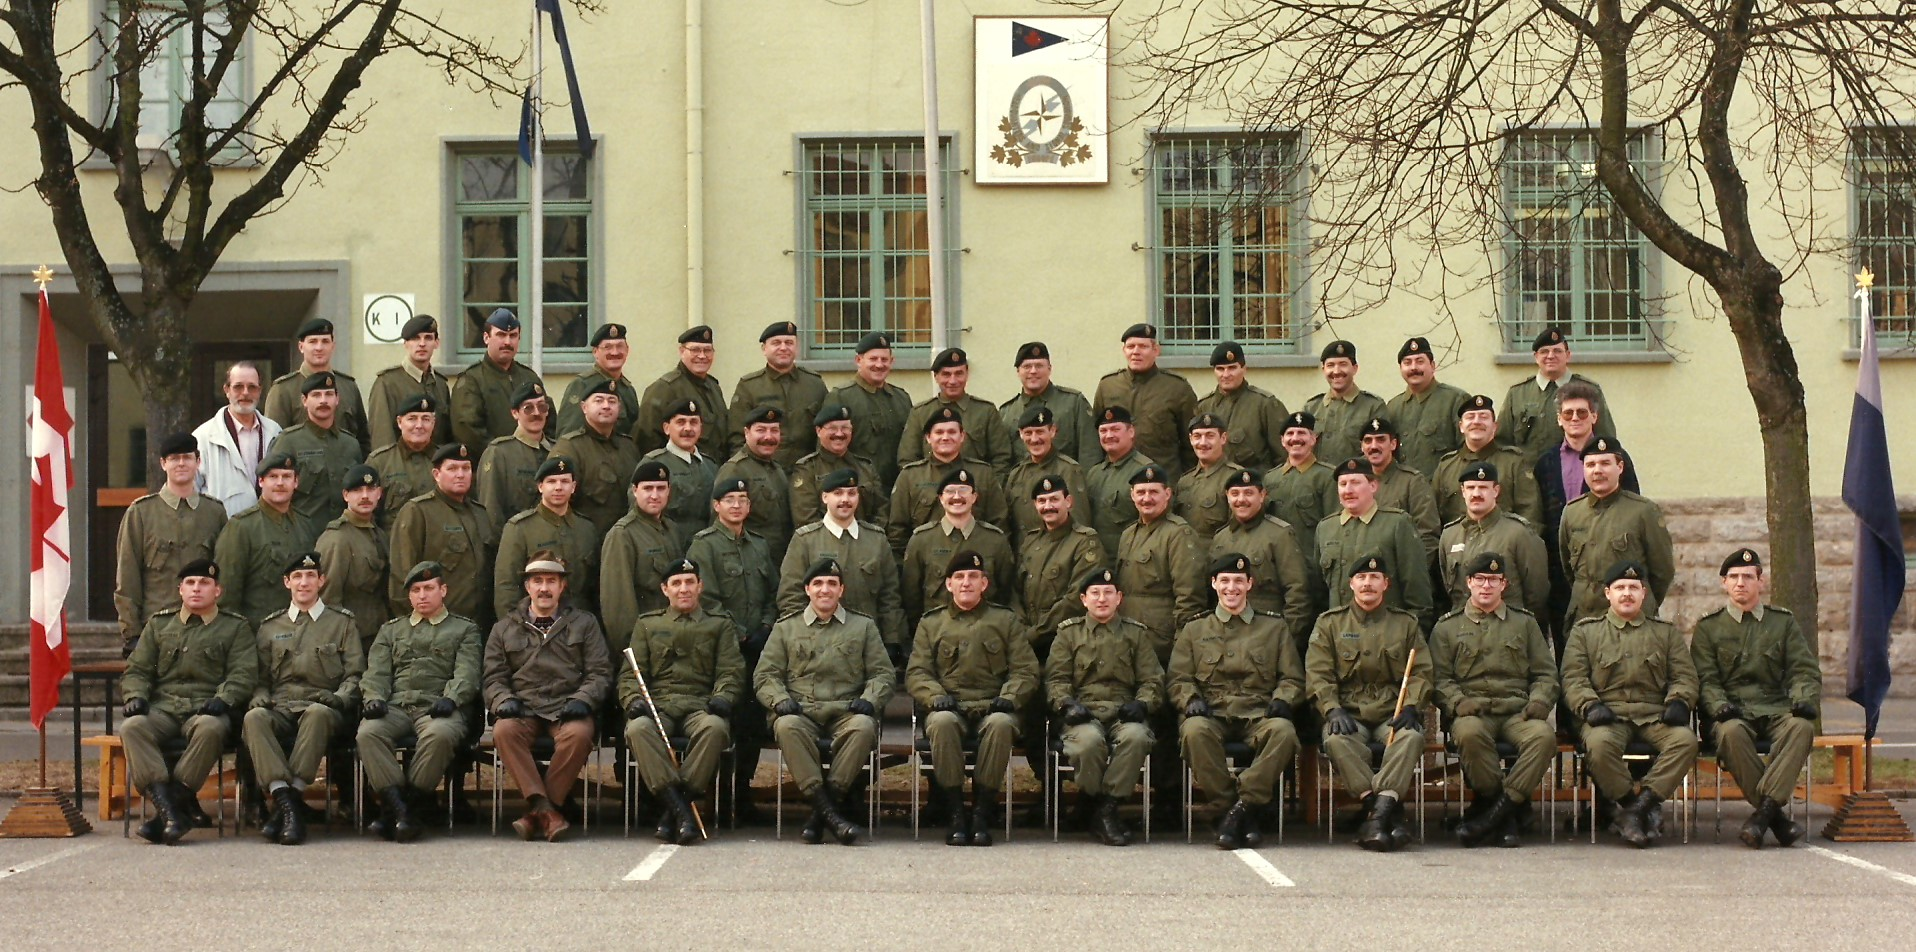 4 CMBG HQ and Signals Squadron Officers and Senior NCOs, Lahr, Germany, January 1992